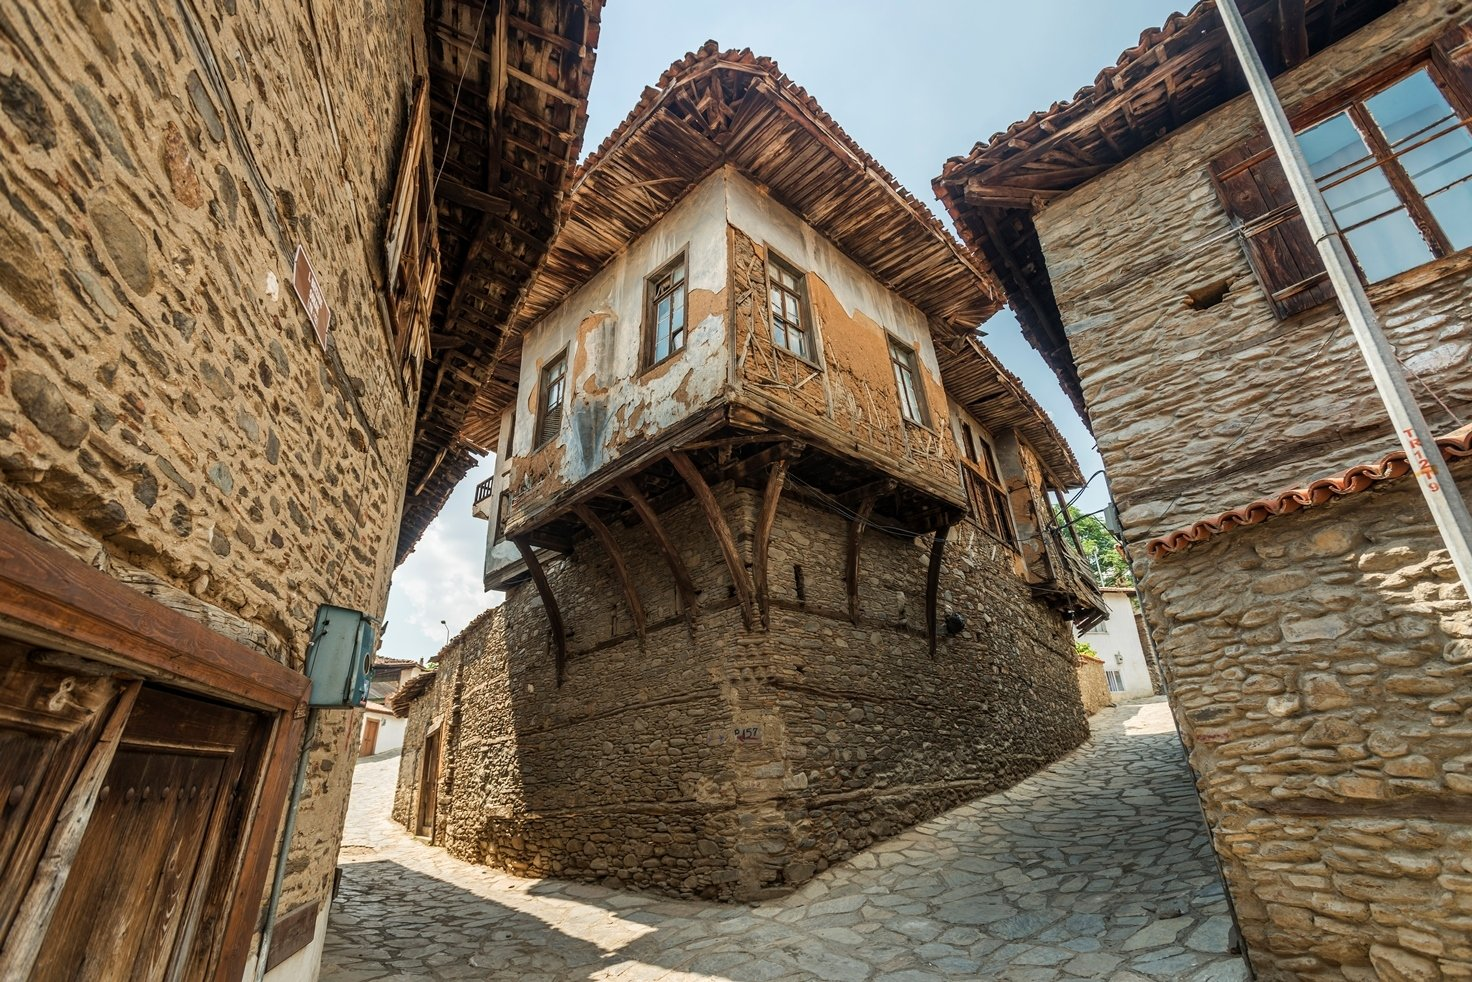 The houses built with natural stones and wood are the standouts of Birgi.